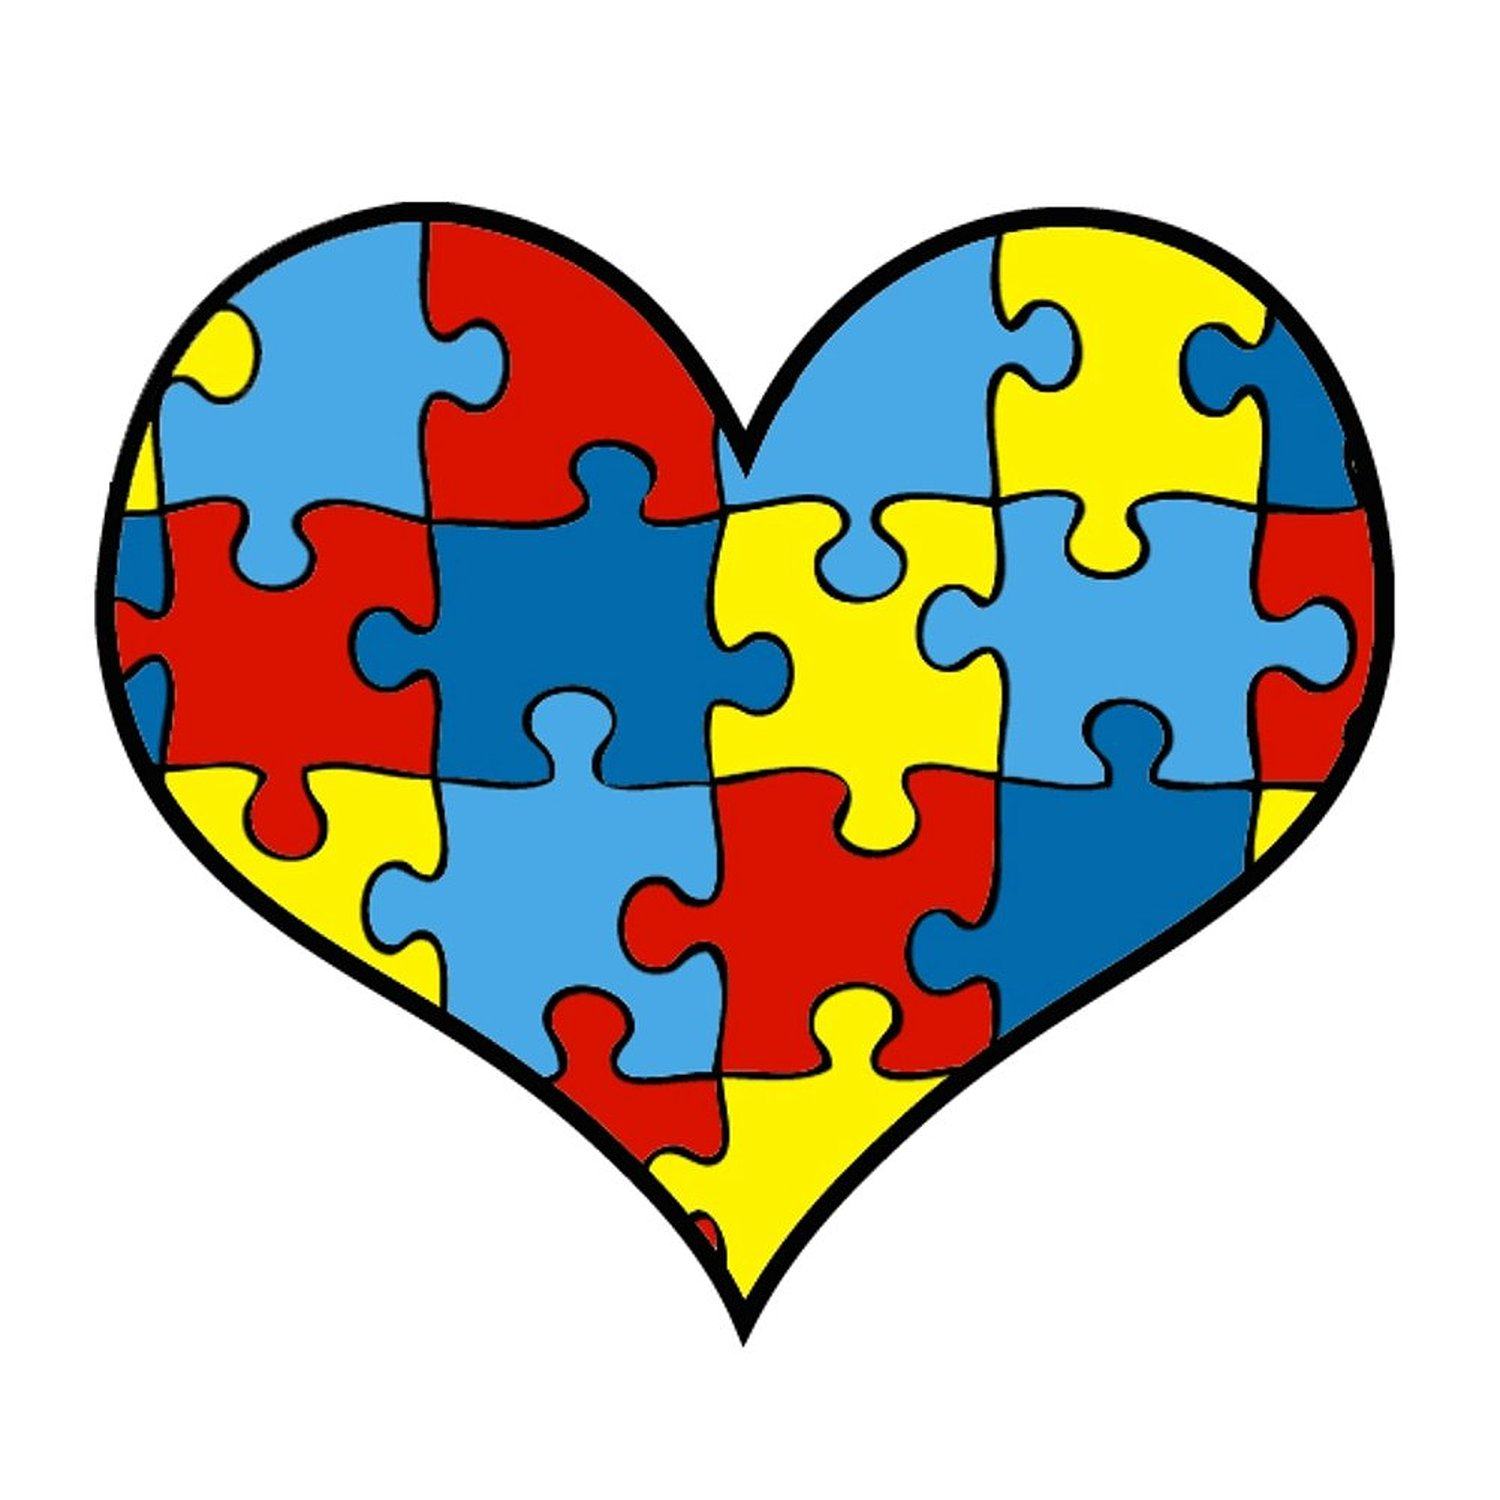 Free Autism Puzzle, Download Free Clip Art, Free Clip Art on.